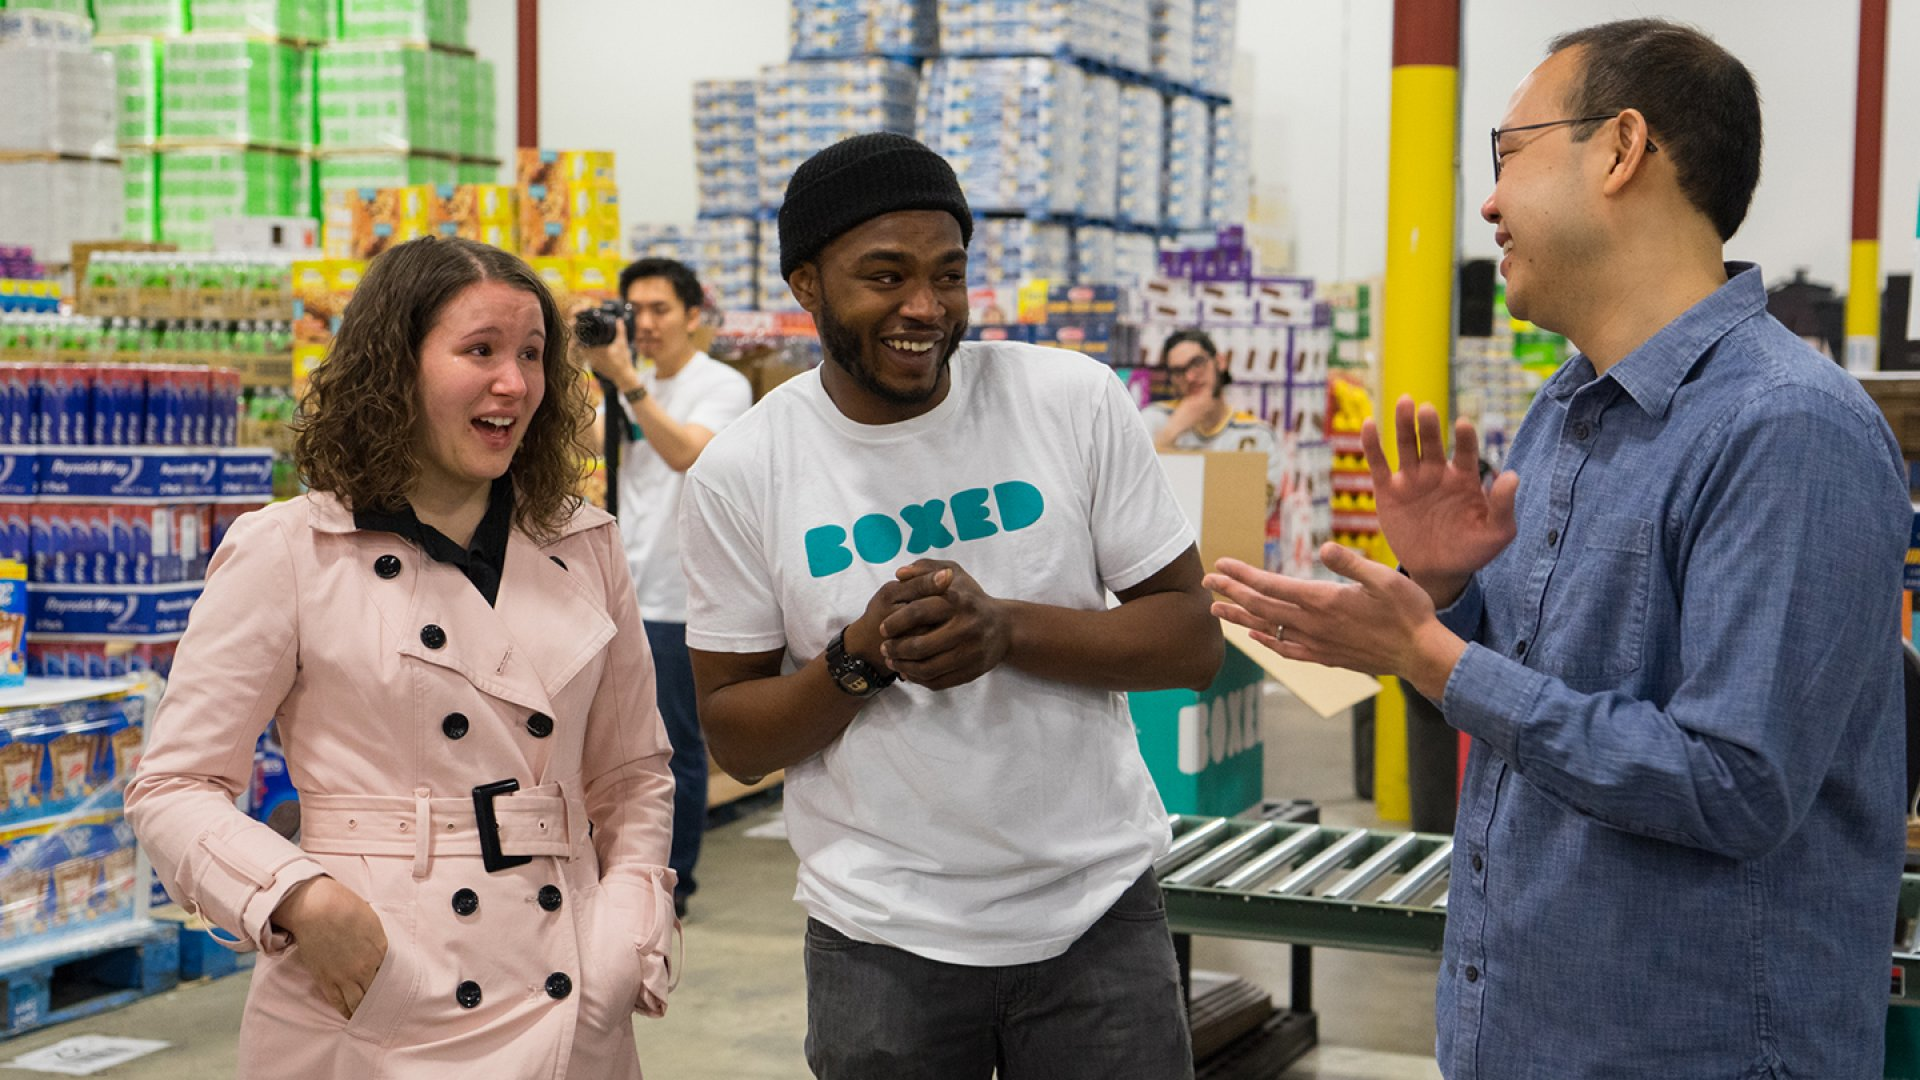 Chieh Huang, CEO of Boxed, announced that the company will start paying for all full-time employees' weddings. Huang (right) surprised employee Marcel Graham and his fiancée this week with the news that Boxed will foot the couple's wedding bill.